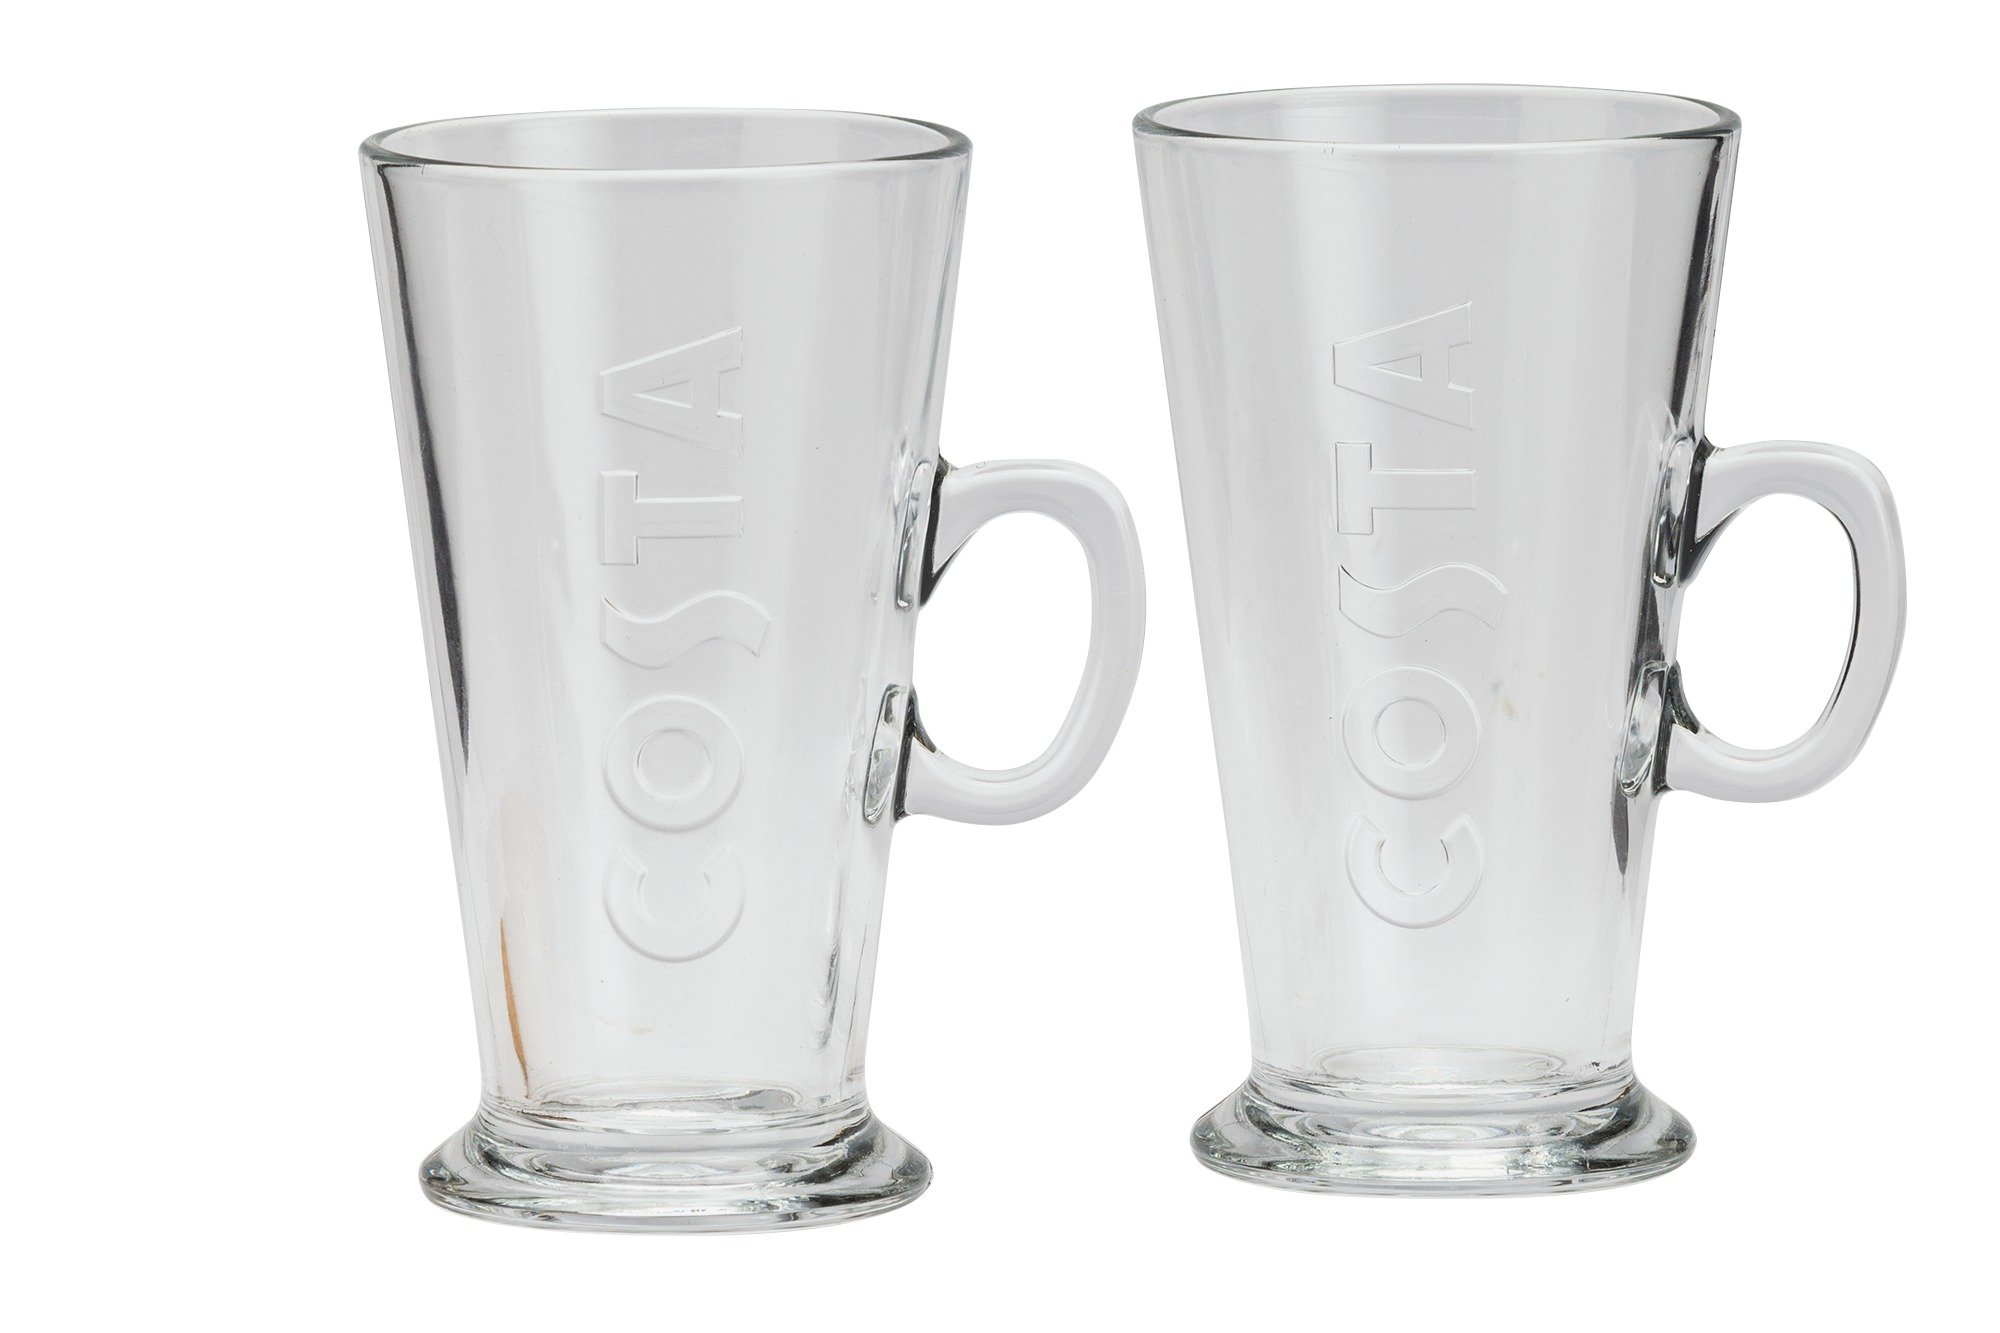 Image of Costa Latte Glasses - Set of 2